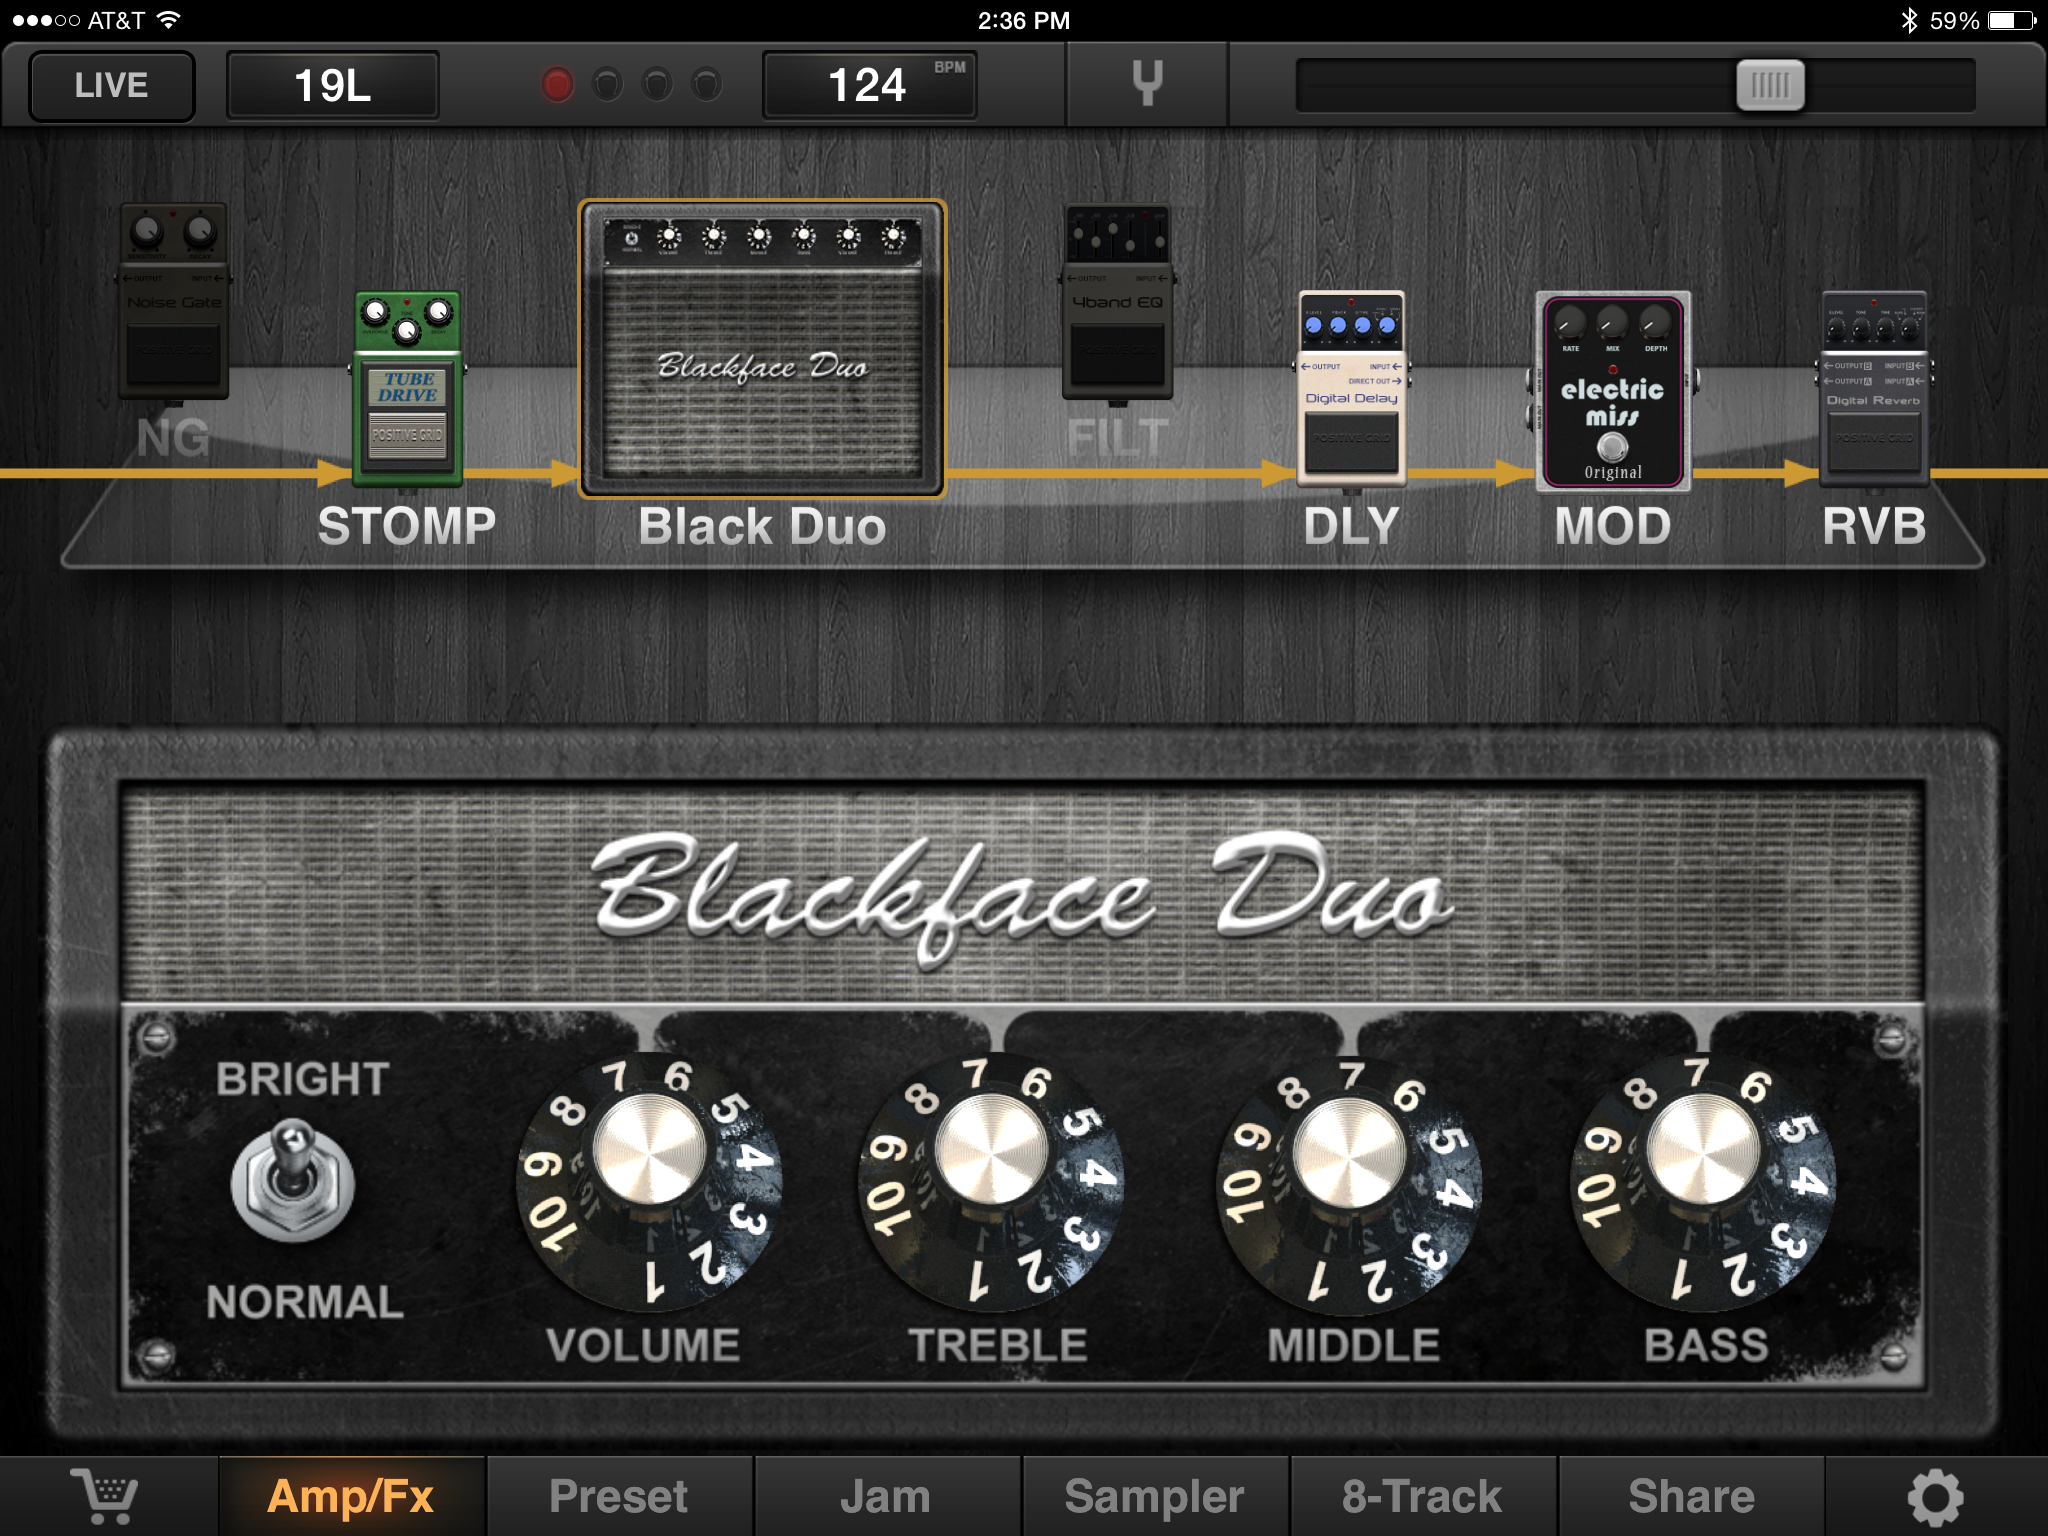 Black face app - The Amps That Come With The App Include Two Fender Emulations Blackface Duo And Tweed Bass As Well As Several Marshall Style Amps An Ac30 Emulation And A